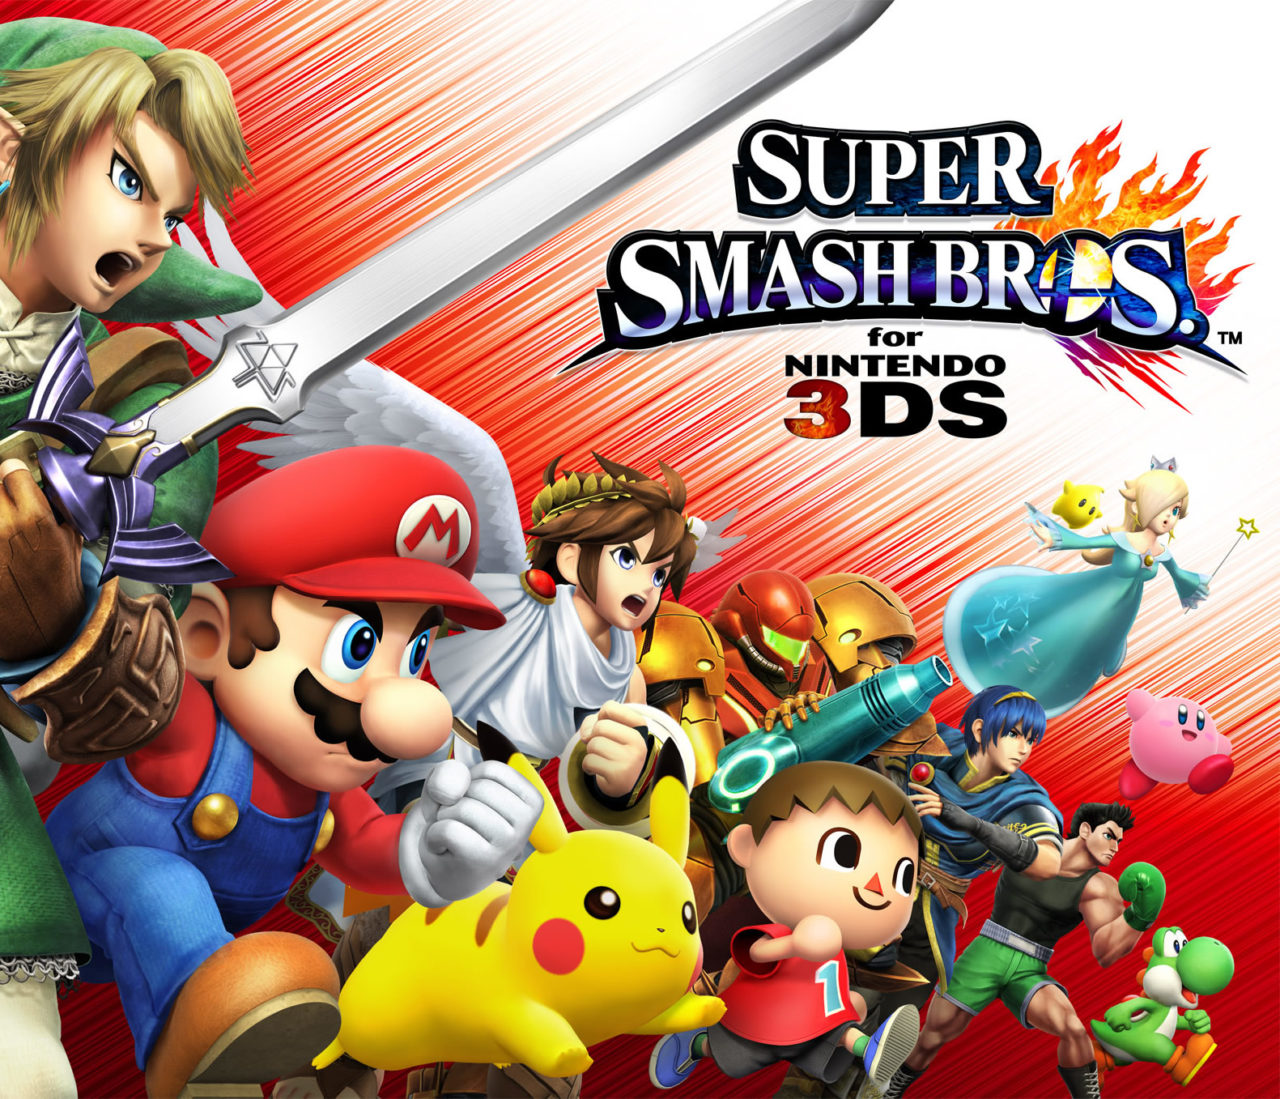 PR: Super Smash Bros. sells 705,000 in two days, 55 percent increase in hardware